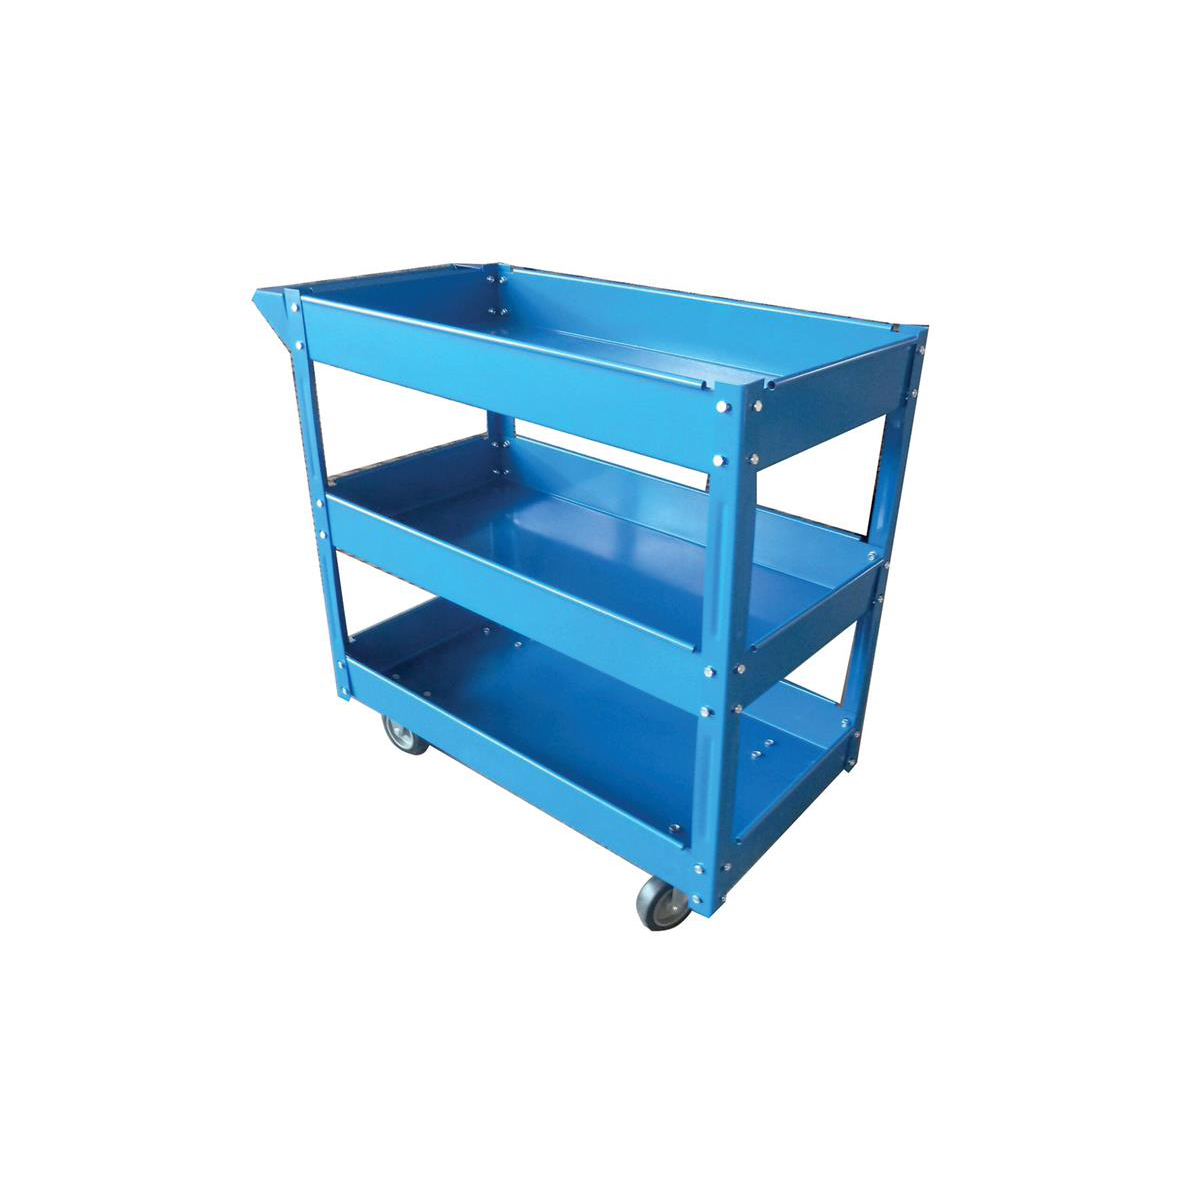 5 Star Facilities serving Trolley 3 Tier W460xD865xH840mm Blue